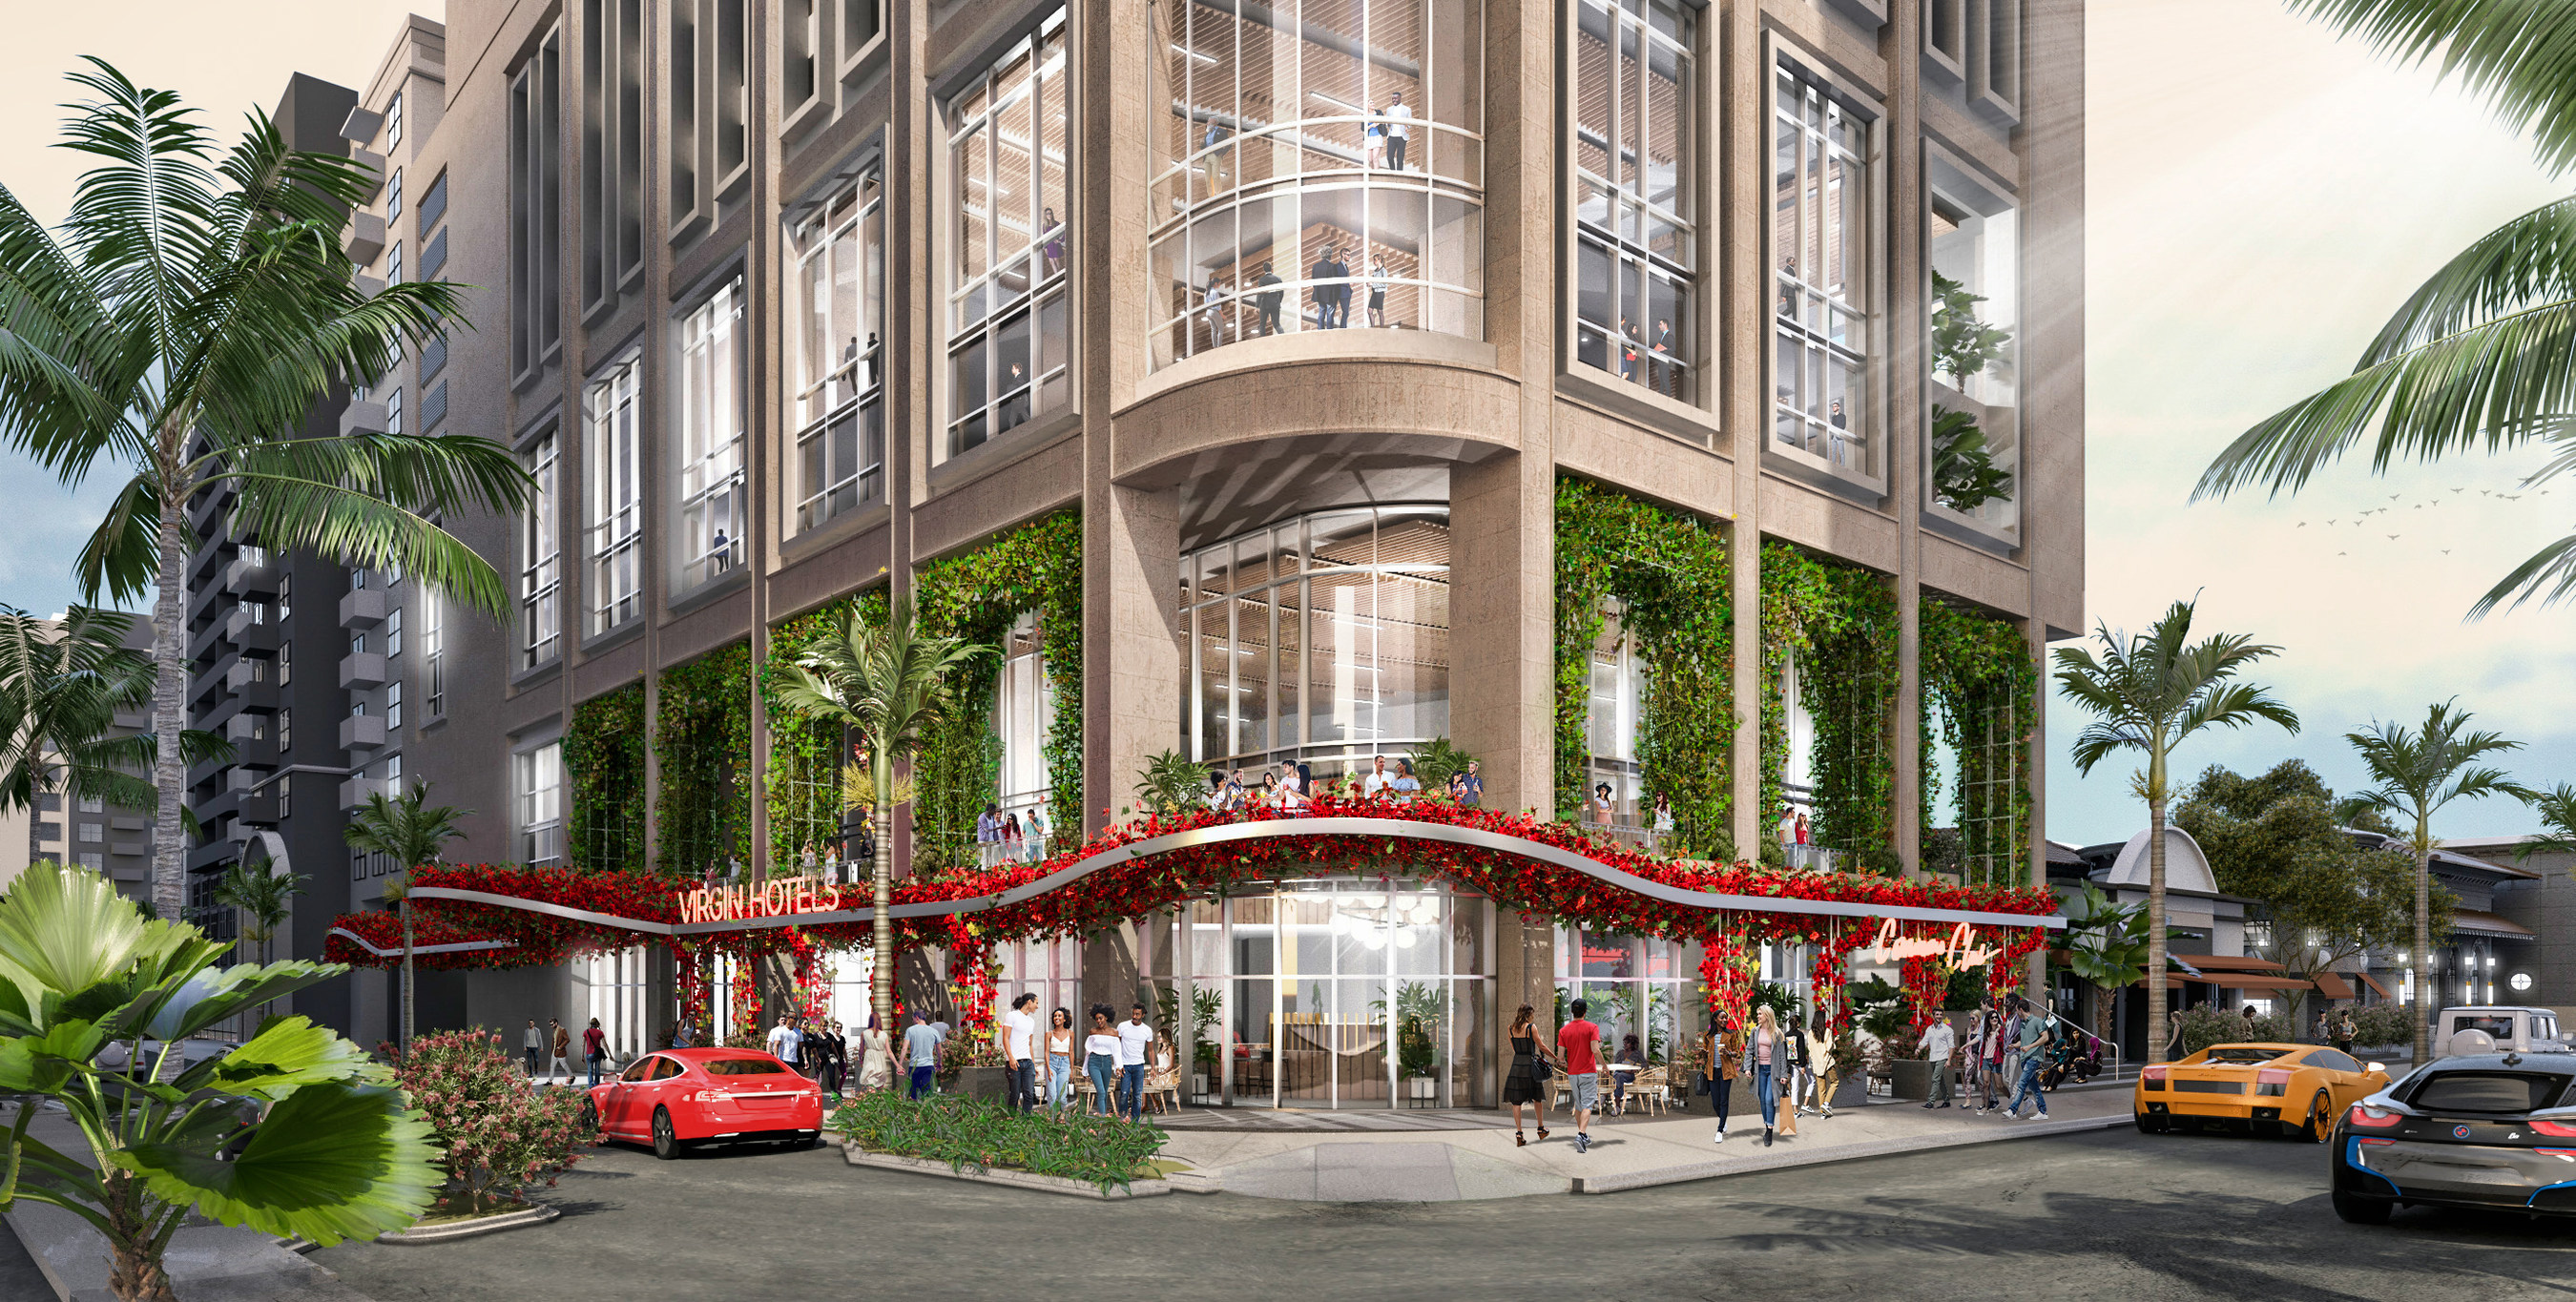 Virgin Hotels Ventures to Miami With New Development in Brickell Slated to Open in 2023